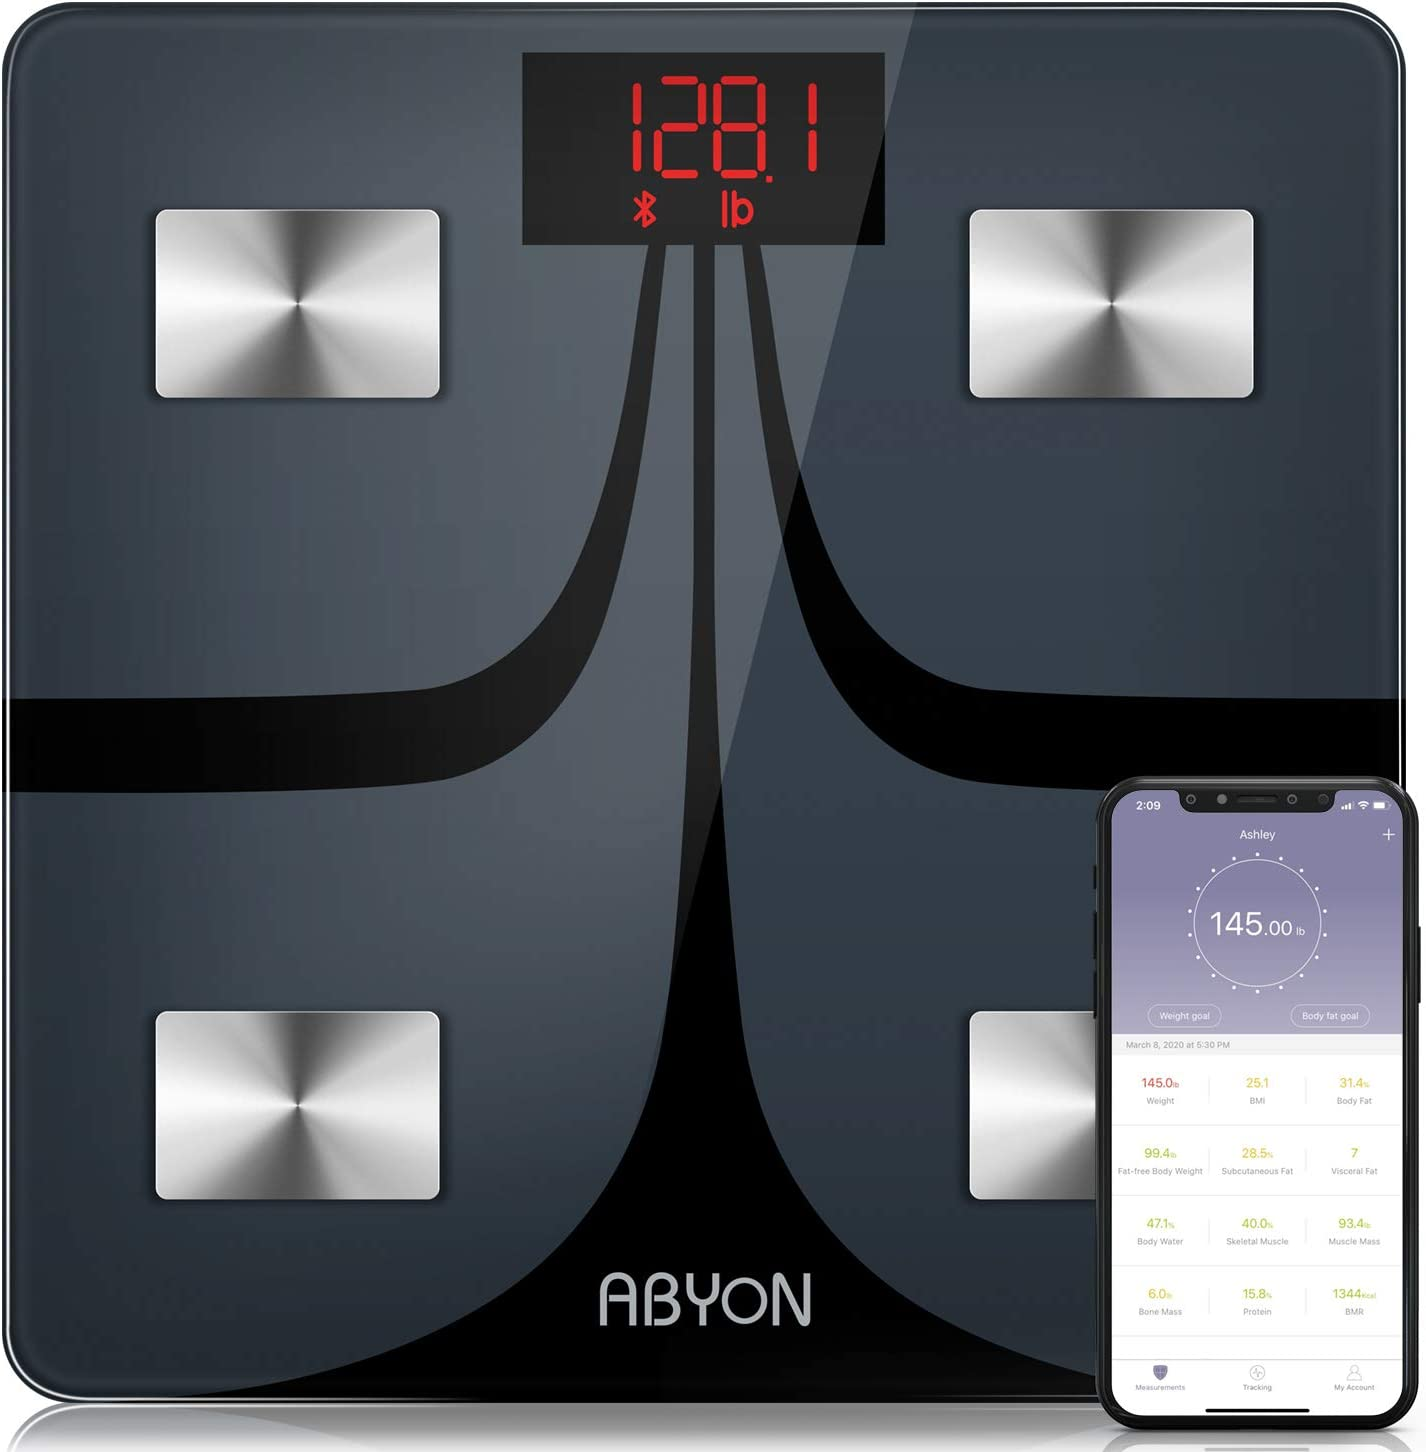 ABYON Bluetooth Smart Bathroom Scales for Body Weight Digital Body Fat Scale,Auto Monitor Body Weight,Fat,BMI,Water, BMR, Muscle Mass with Smartphone APP,Fitness Weight Loss Track Health Scale: Health & Personal Care